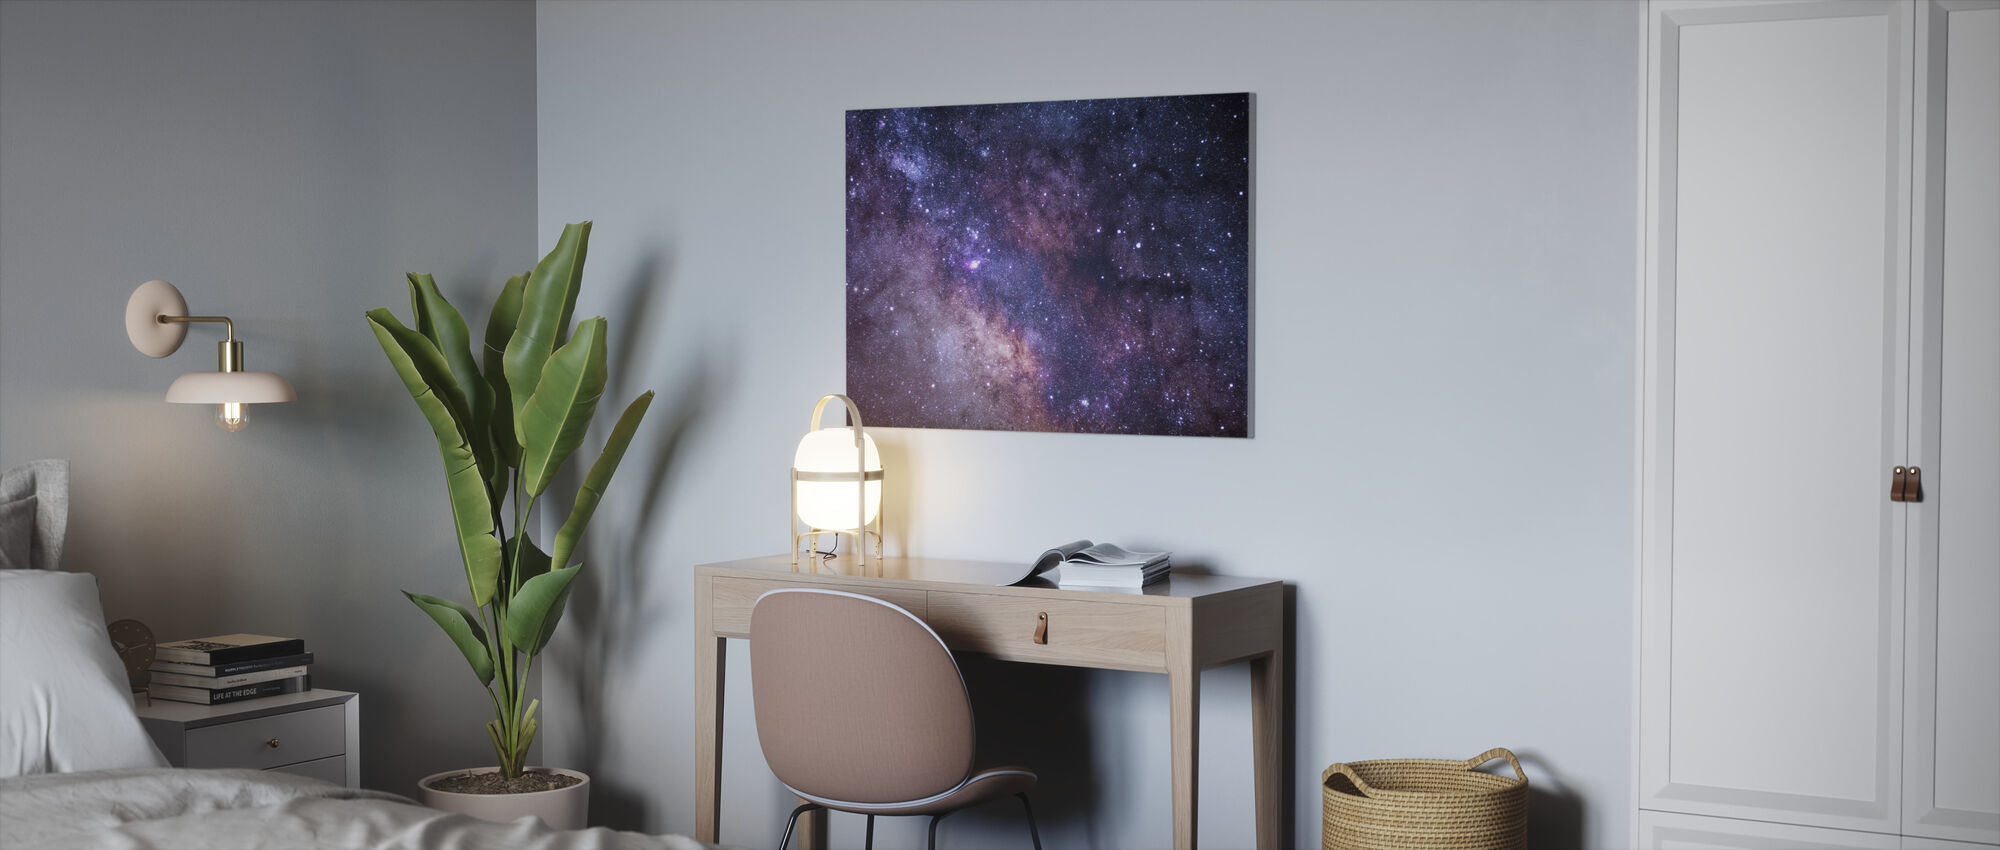 Galaxy - Canvas print - Office